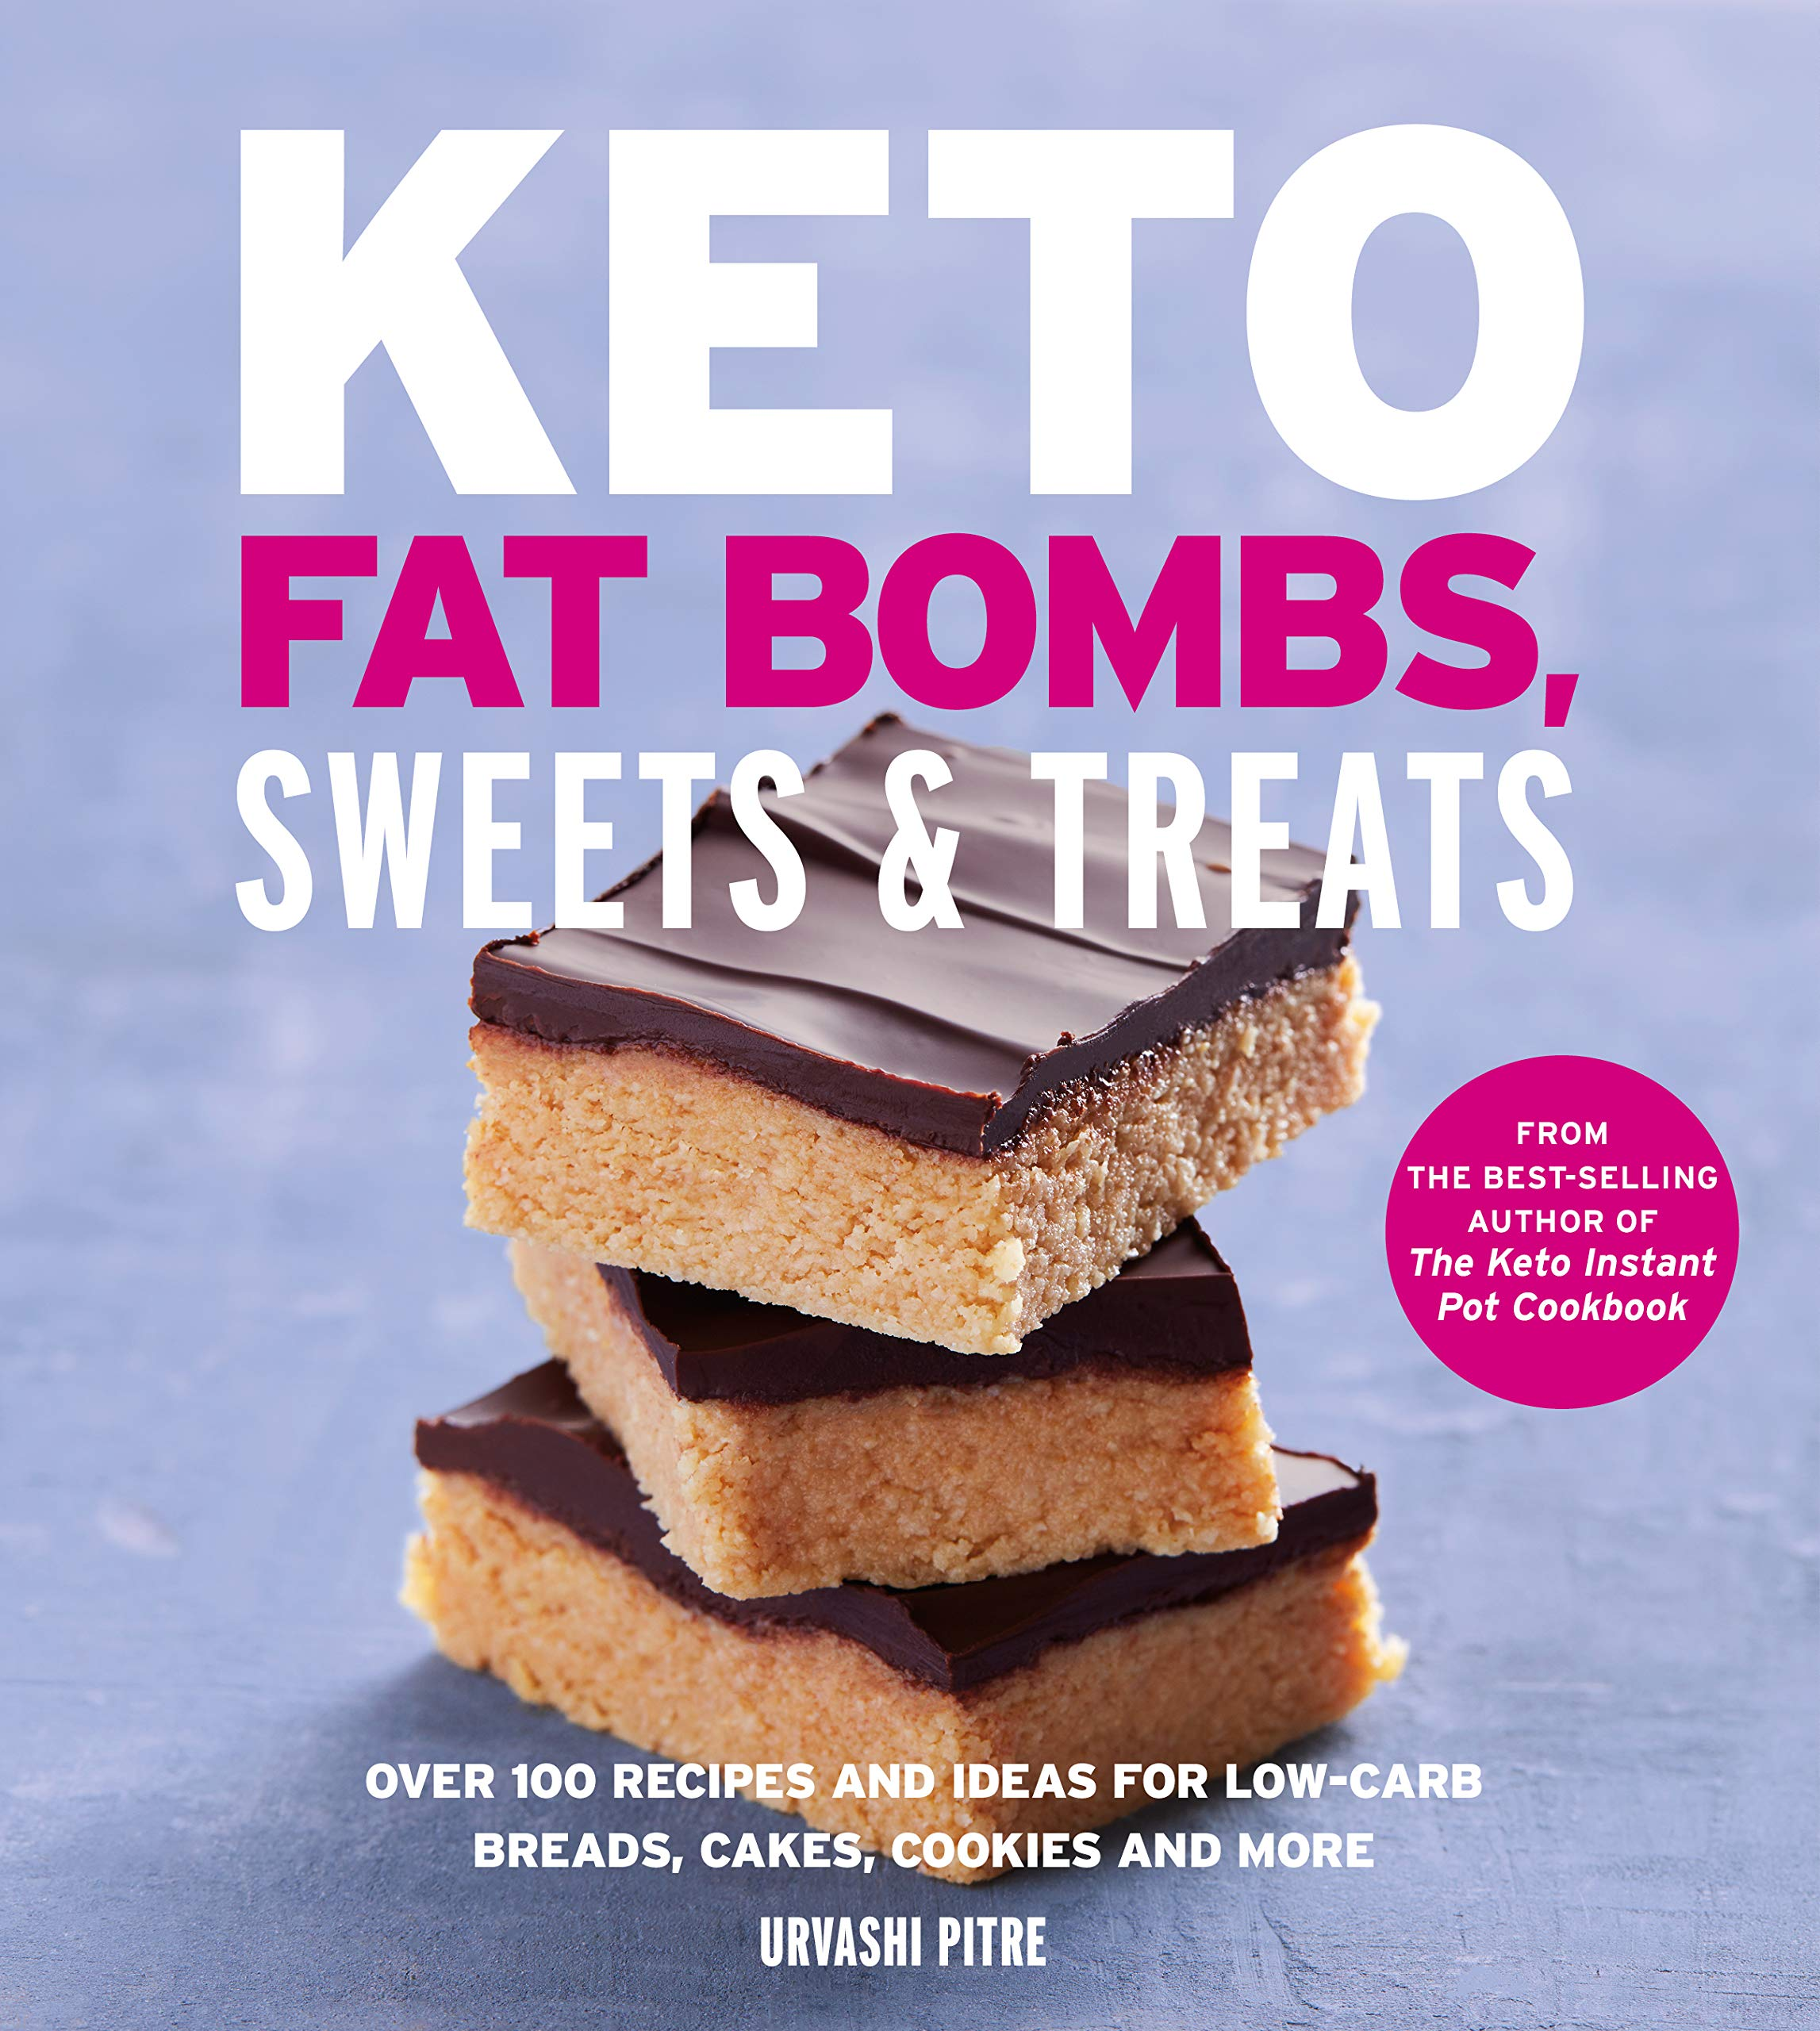 Keto Sweets Keto-Friendly Dessert Recipes  Colors Price